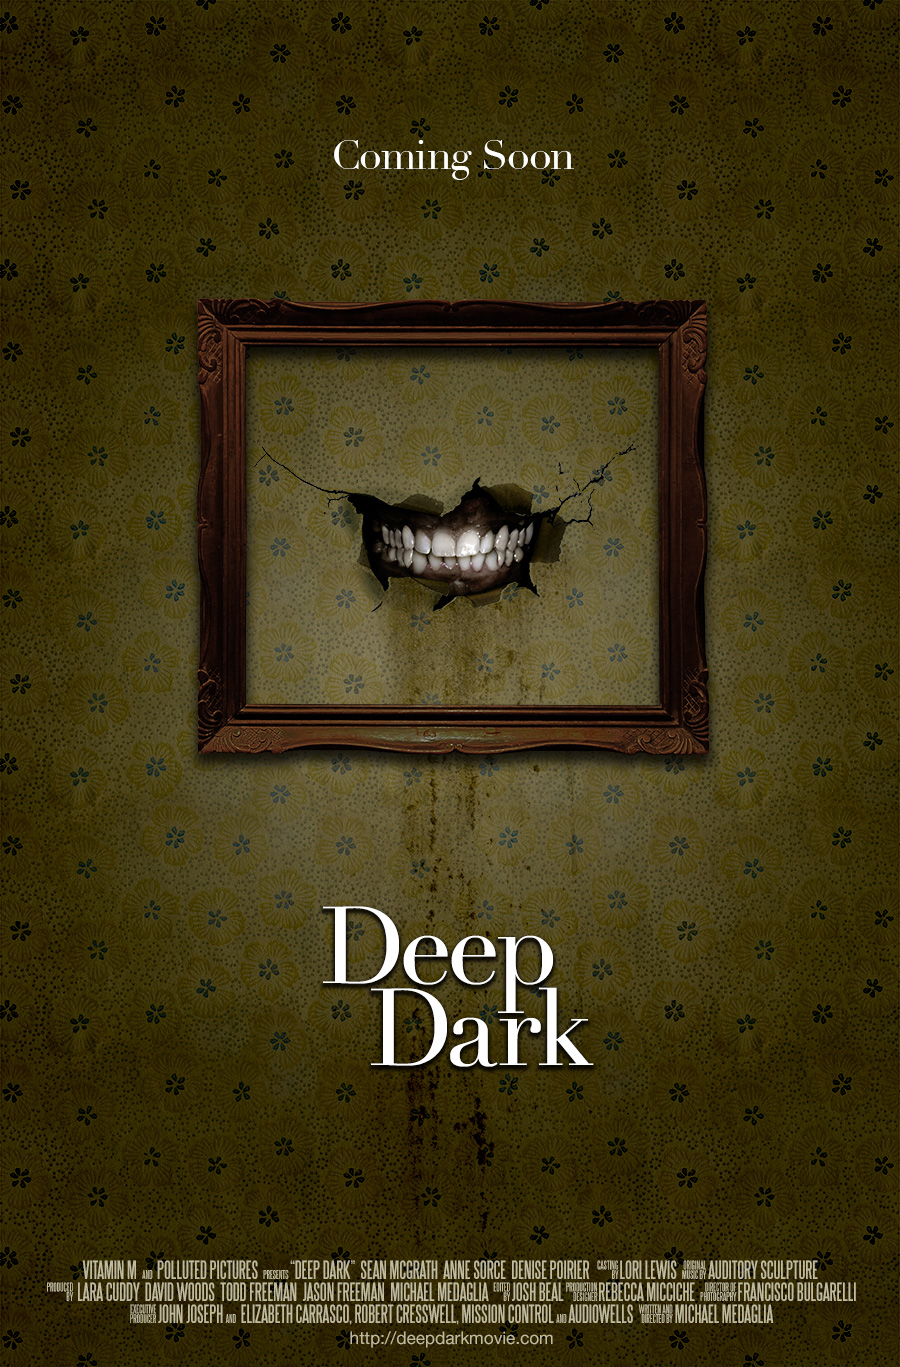 Deep Dark Teaser Trailer and Poster